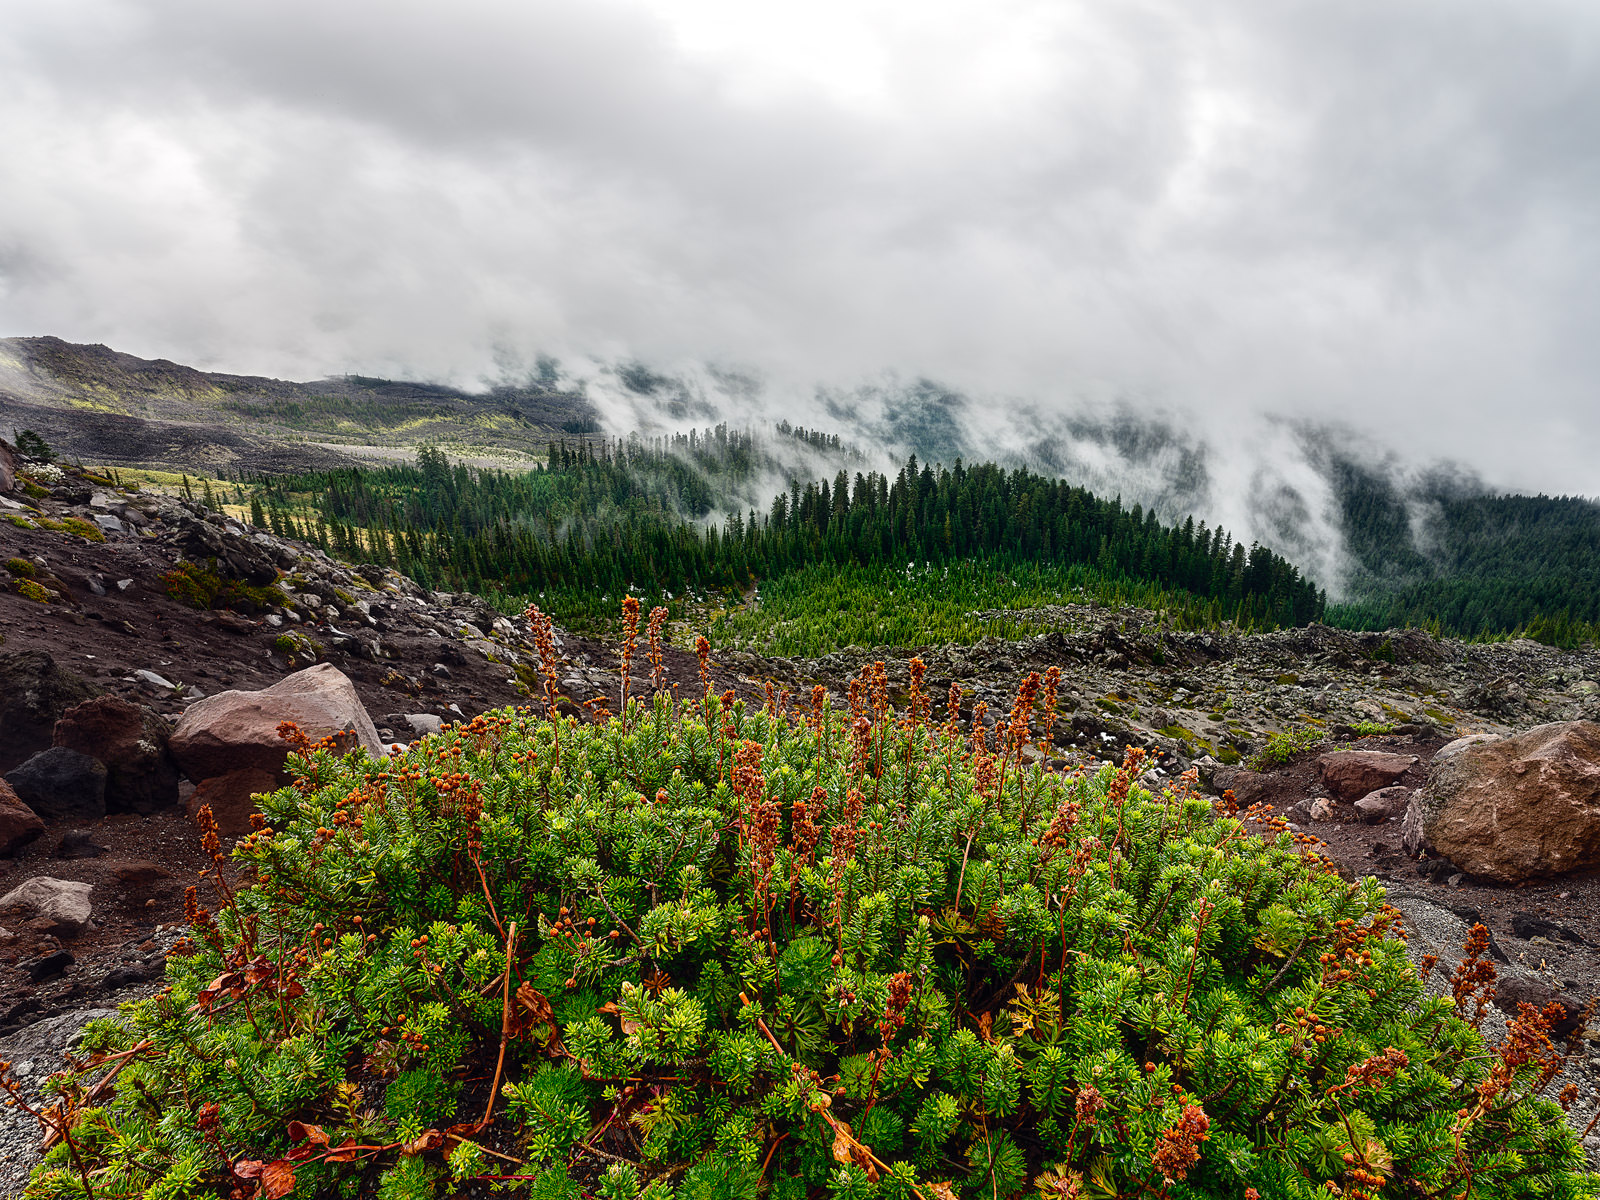 Looking down from the top of the volcano towards shrubs and clouds touching and coming out of the trees.